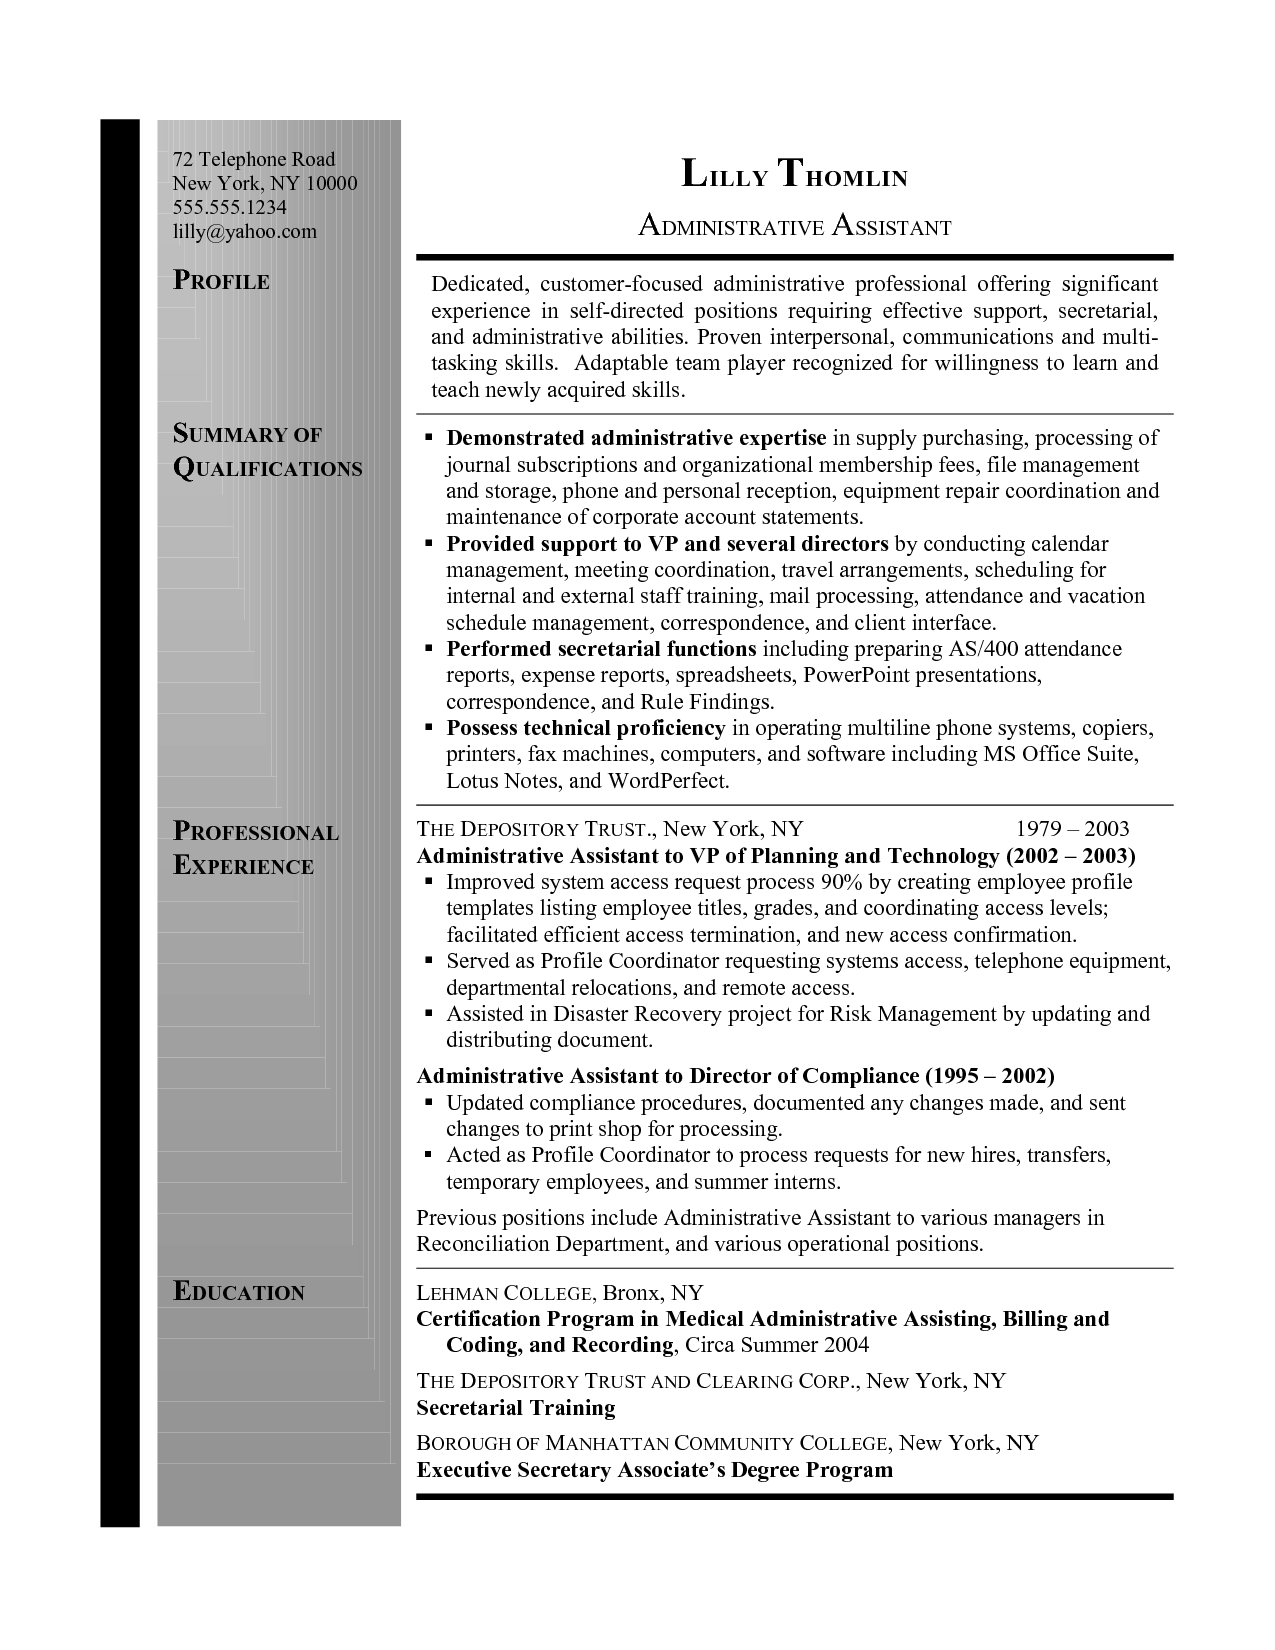 Executive Secretary Resume Examples Resume Summary Administrative Assistant  Resume Info  Pinterest .